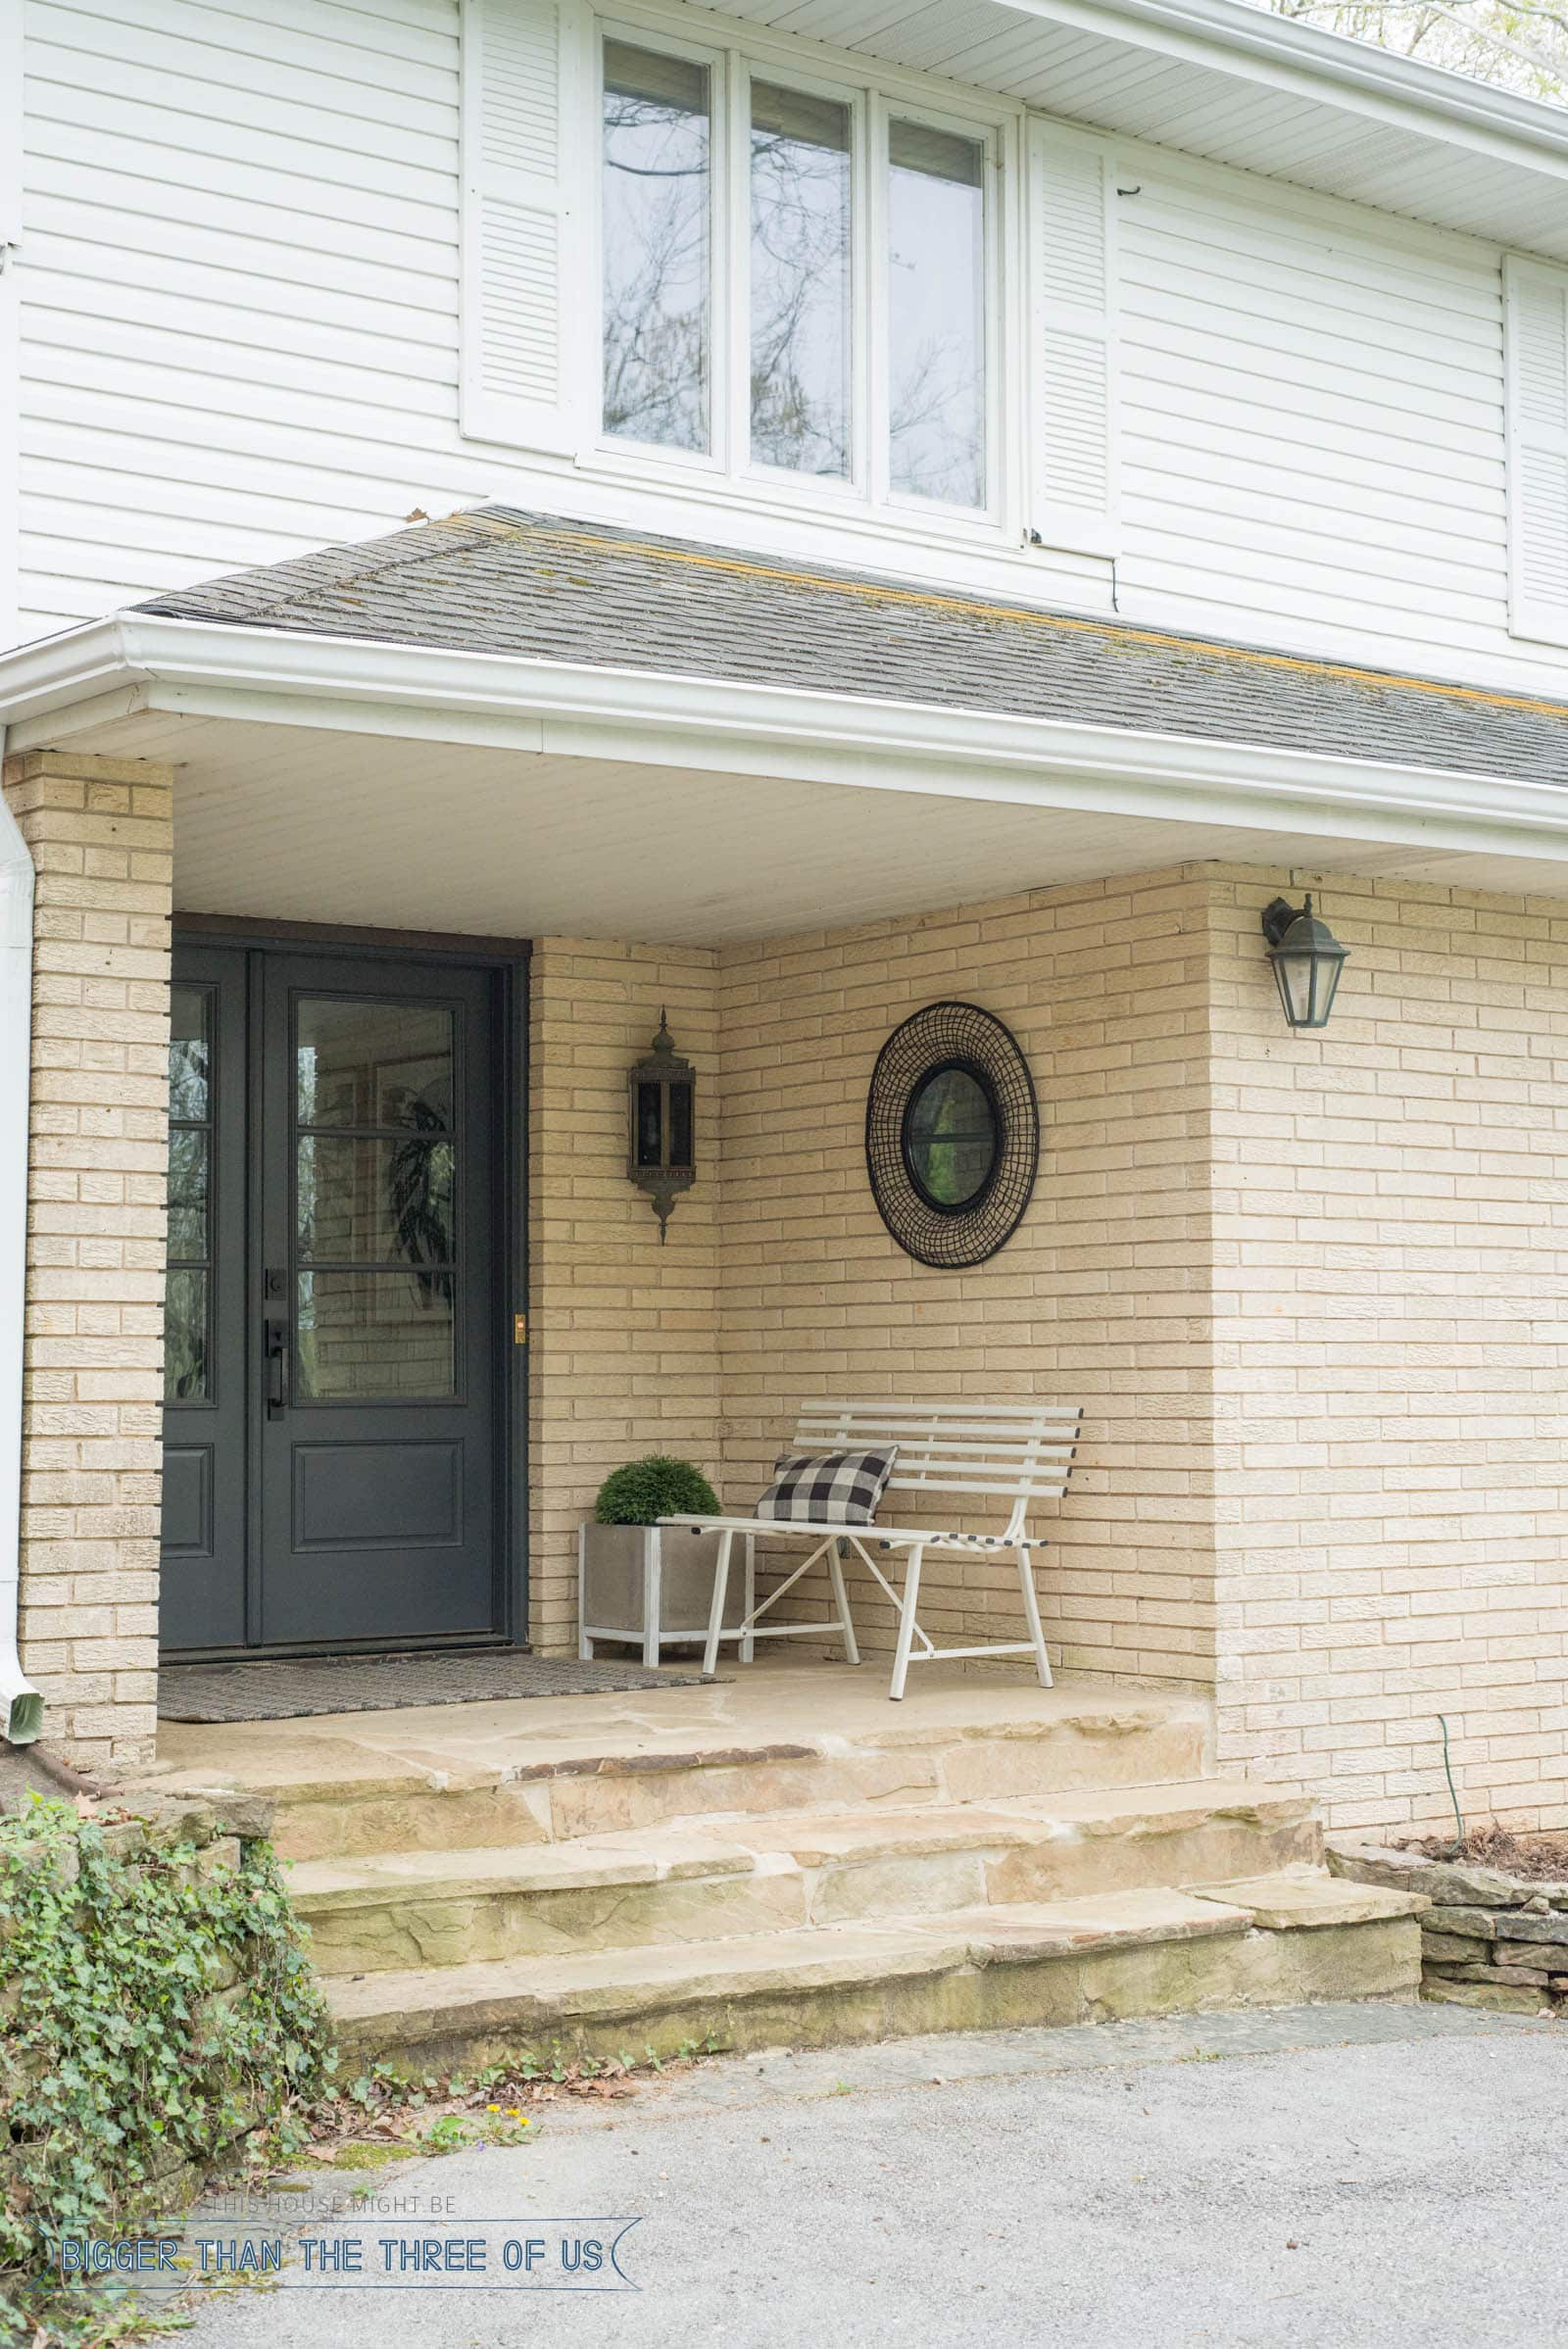 Budget friendly ideas for a modern front porch. BEFORE